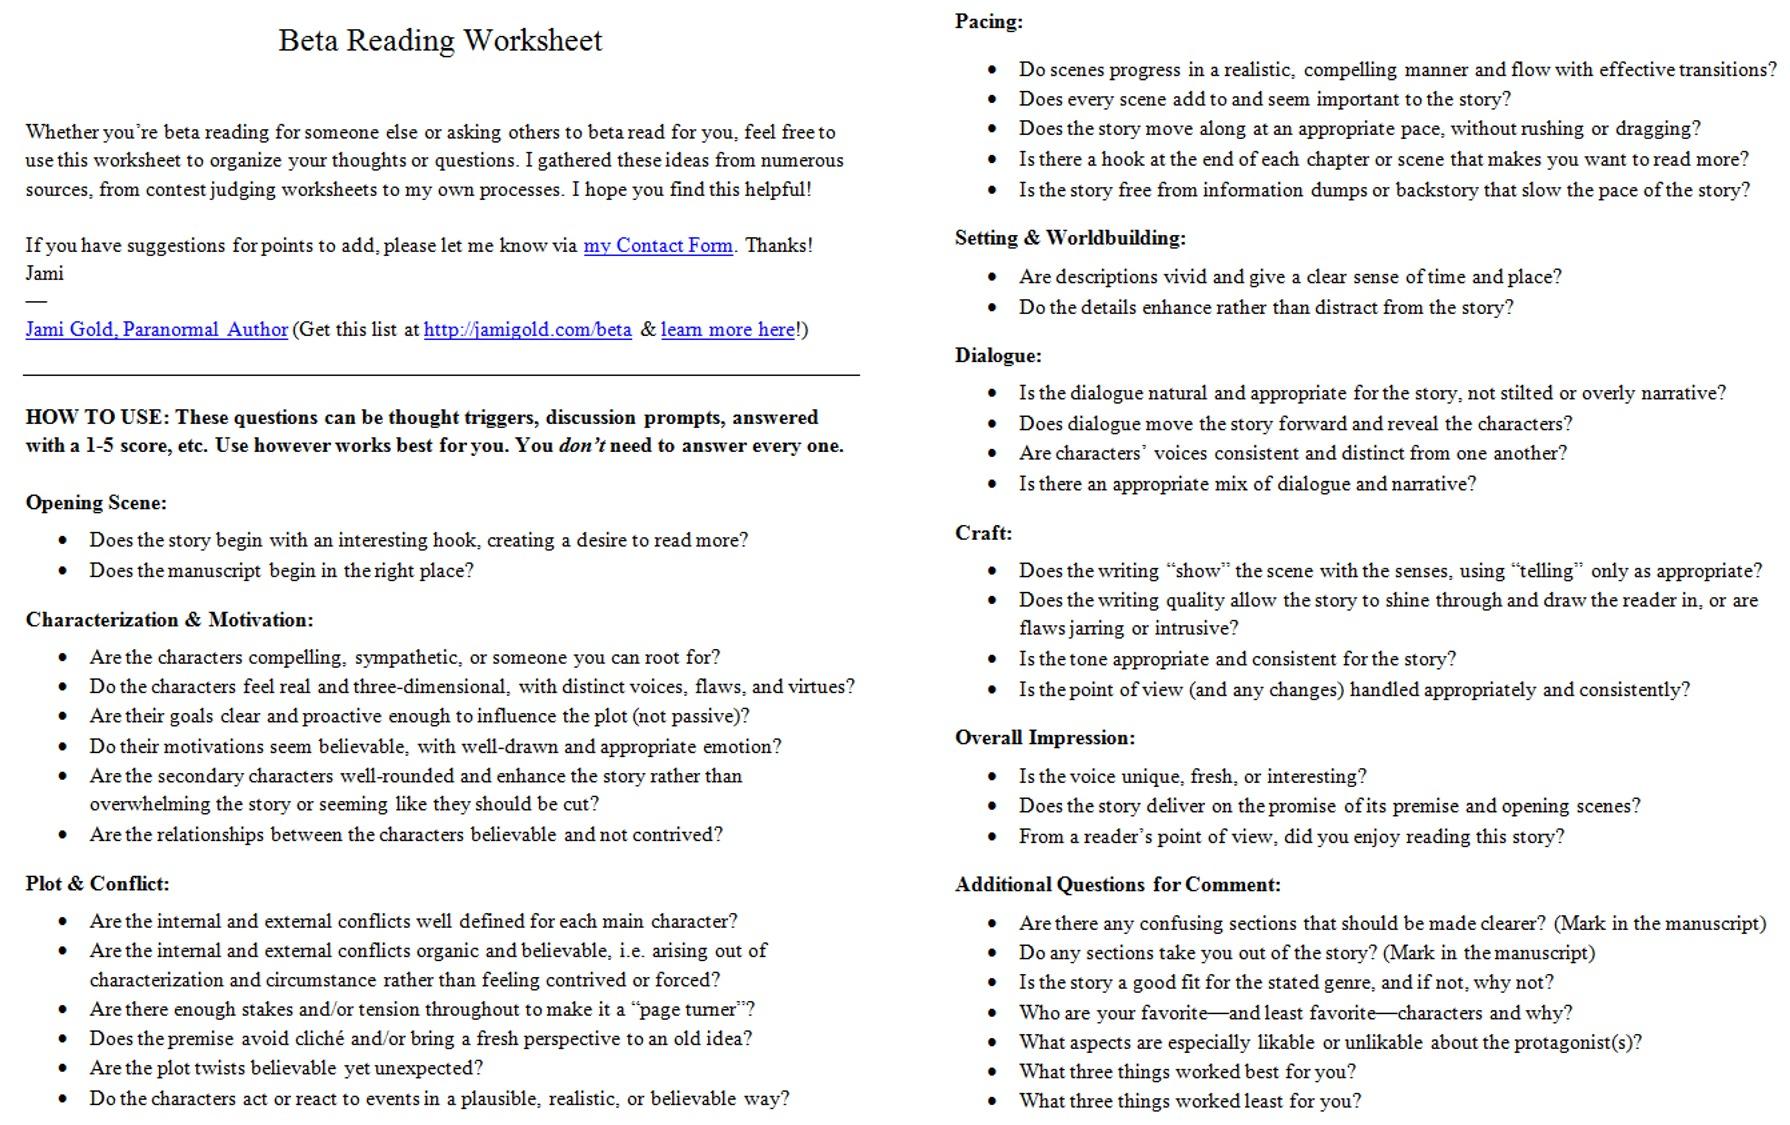 Weirdmailus  Marvellous Worksheets For Writers  Jami Gold Paranormal Author With Hot Screen Shot Of The Twopage Beta Reading Worksheet With Appealing Solar System Worksheets For Kindergarten Also Portuguese Worksheets In Addition Make Your Own Math Worksheet And Absolute Phrase Worksheet As Well As  Digit Subtraction Worksheets Additionally Irregular Verbs Worksheet Th Grade From Jamigoldcom With Weirdmailus  Hot Worksheets For Writers  Jami Gold Paranormal Author With Appealing Screen Shot Of The Twopage Beta Reading Worksheet And Marvellous Solar System Worksheets For Kindergarten Also Portuguese Worksheets In Addition Make Your Own Math Worksheet From Jamigoldcom